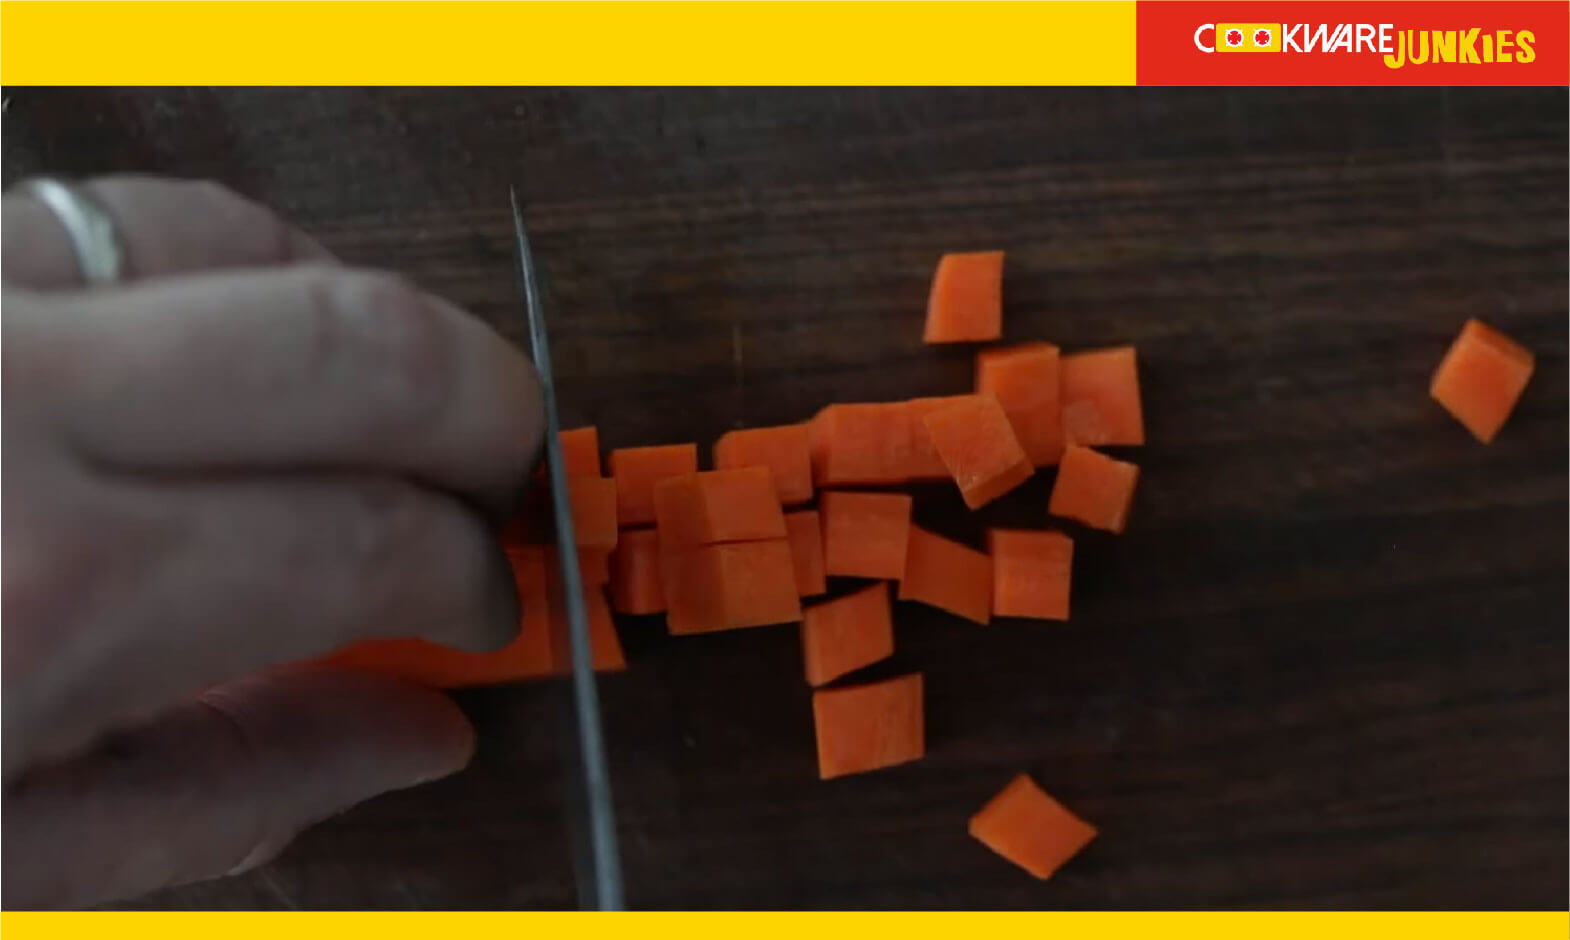 Making diced cubes of carrot on wood surface